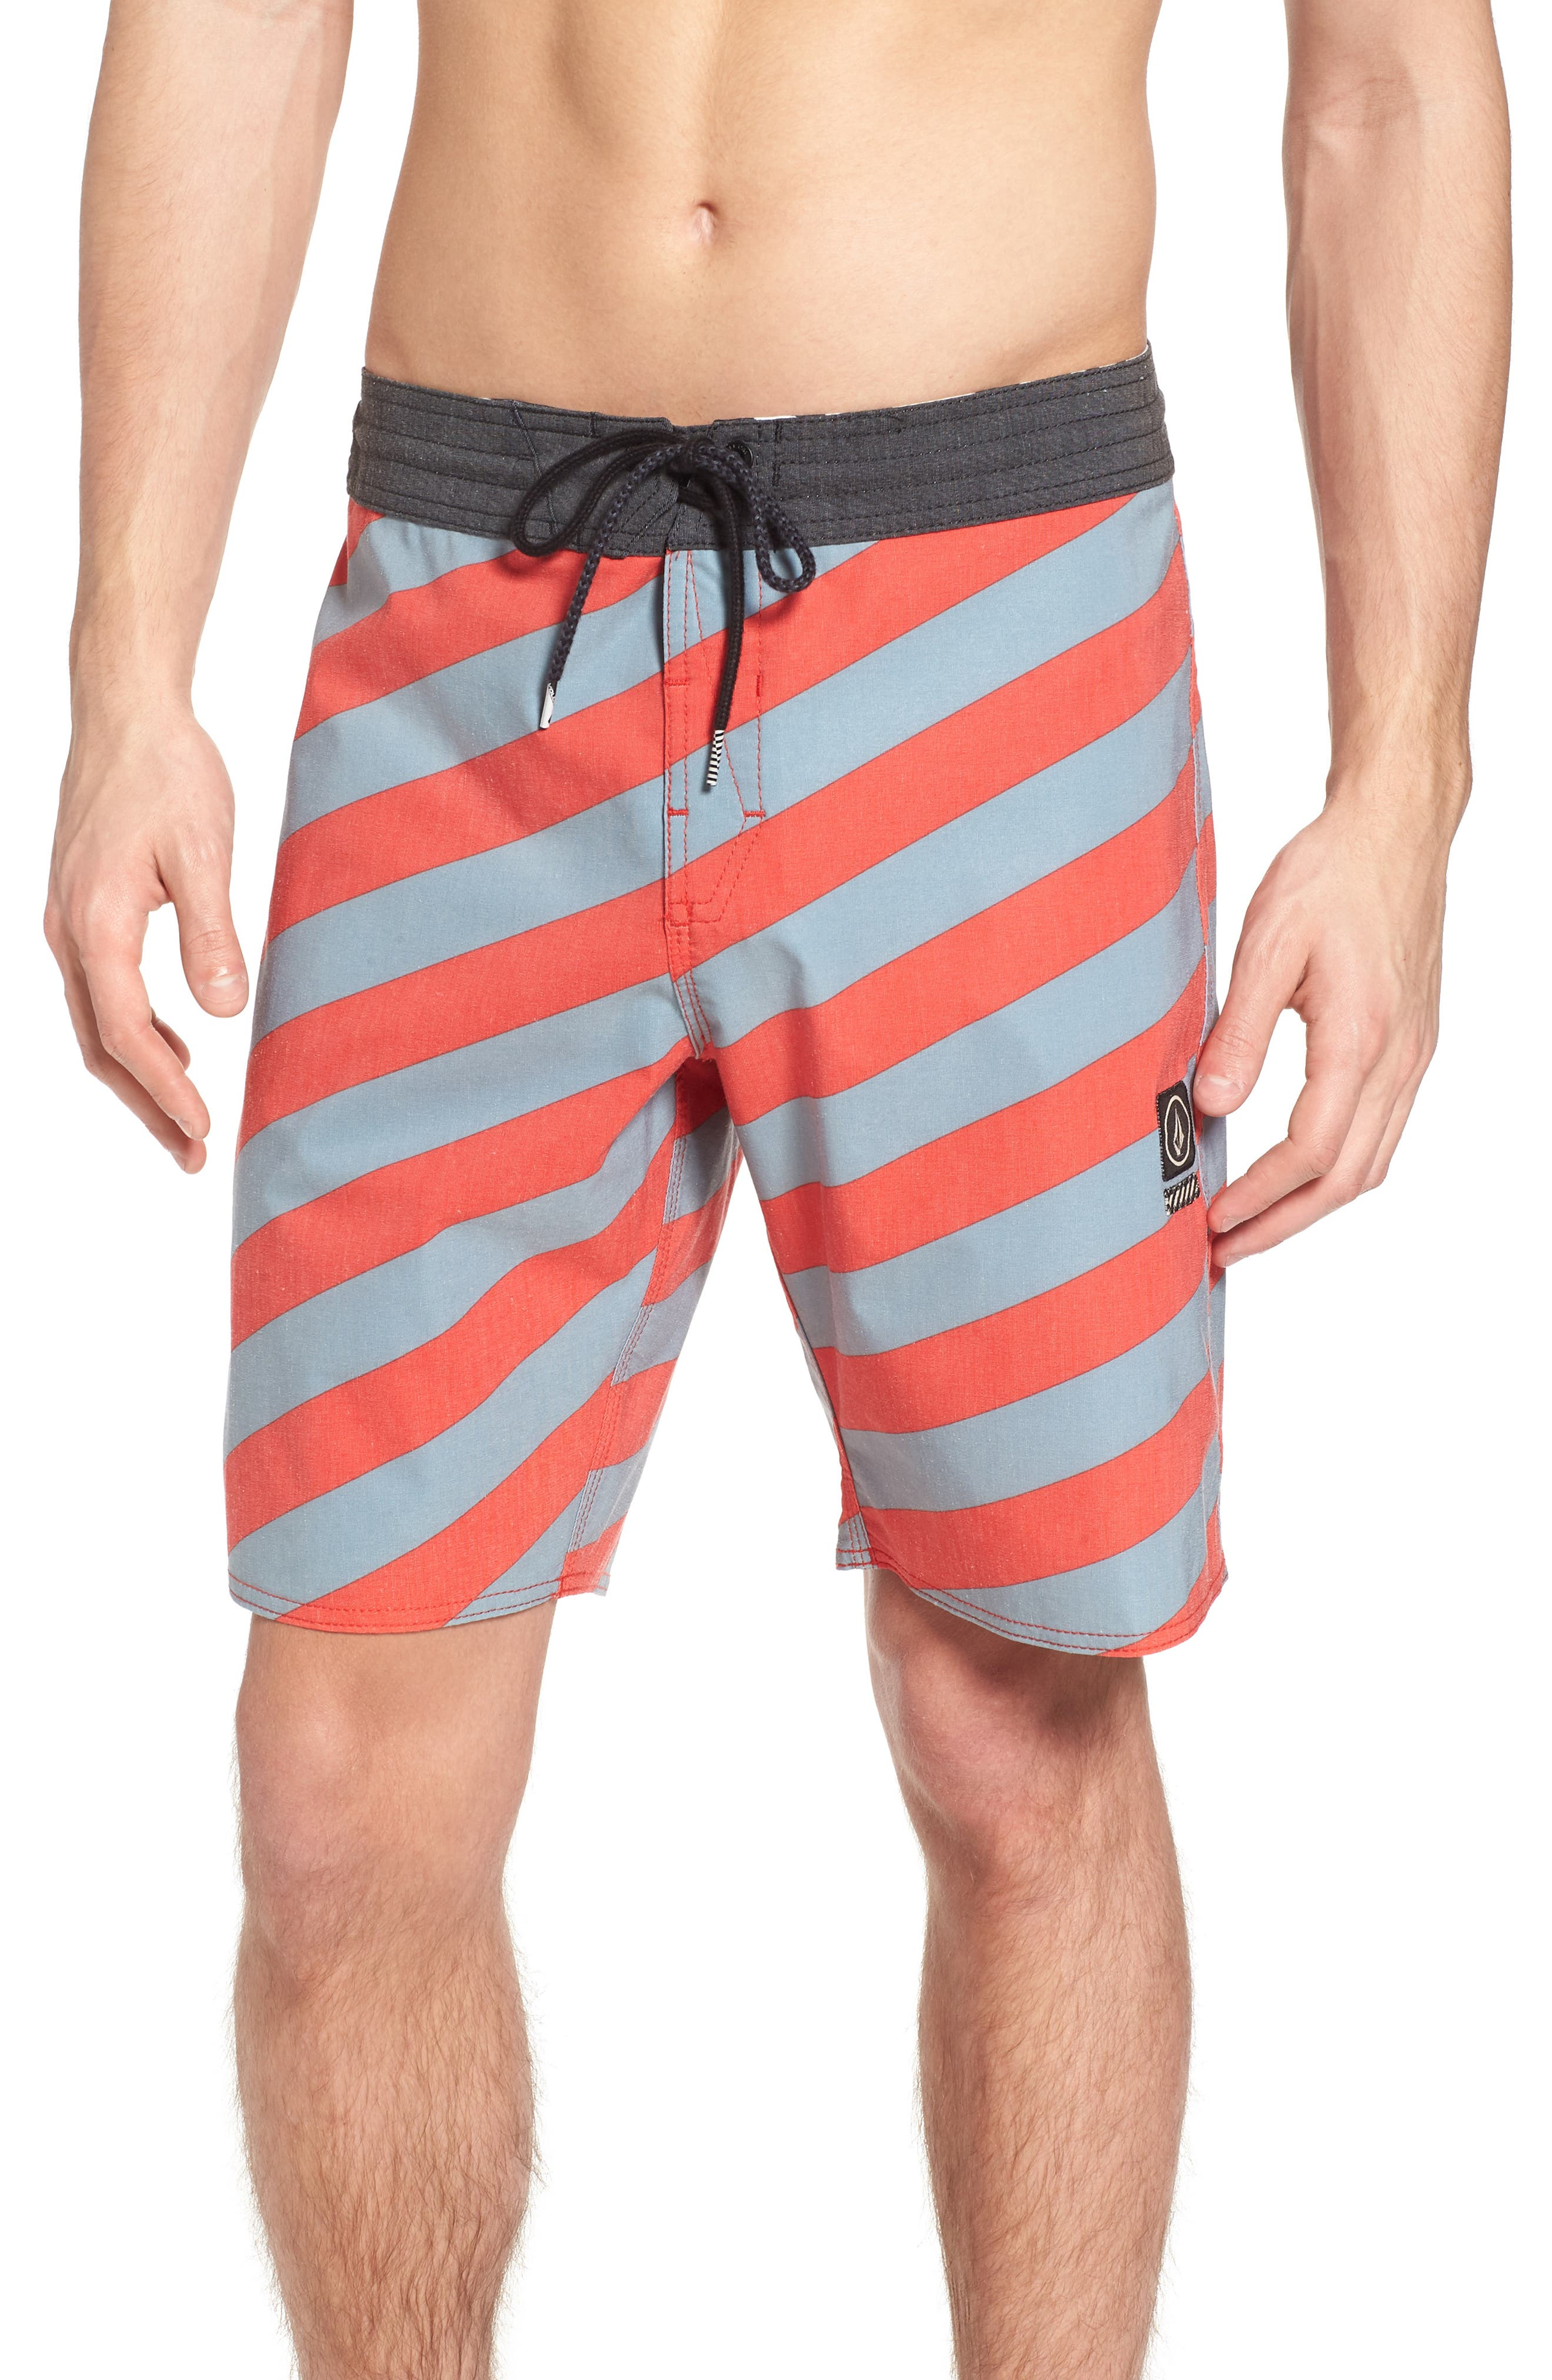 Stripey Stoney Boardshorts,                         Main,                         color, Lead